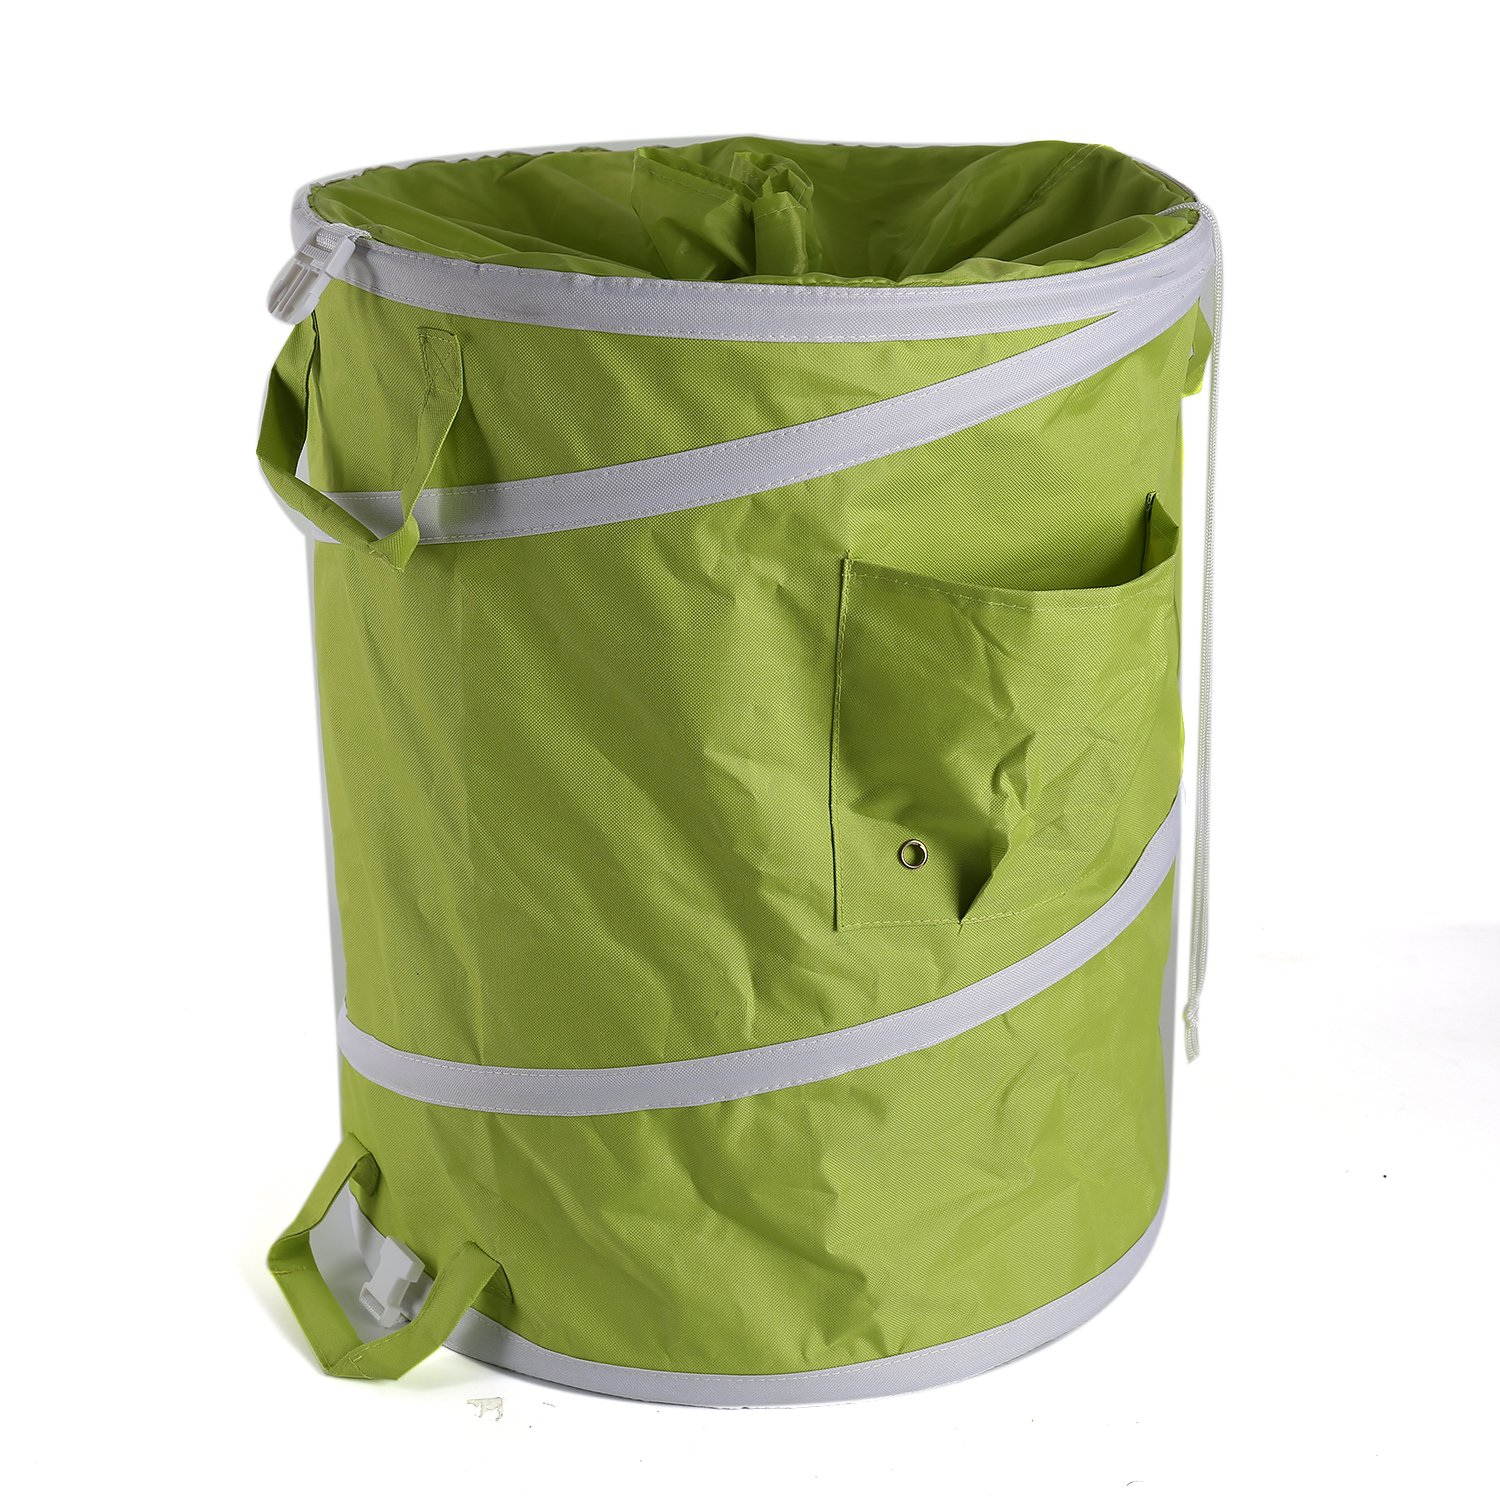 IPOMELO 45 Gallon Pop Up Gardening Bag with Extra 72 Gallon Reusable Yard Lawn Garden Leaf Waste Bag